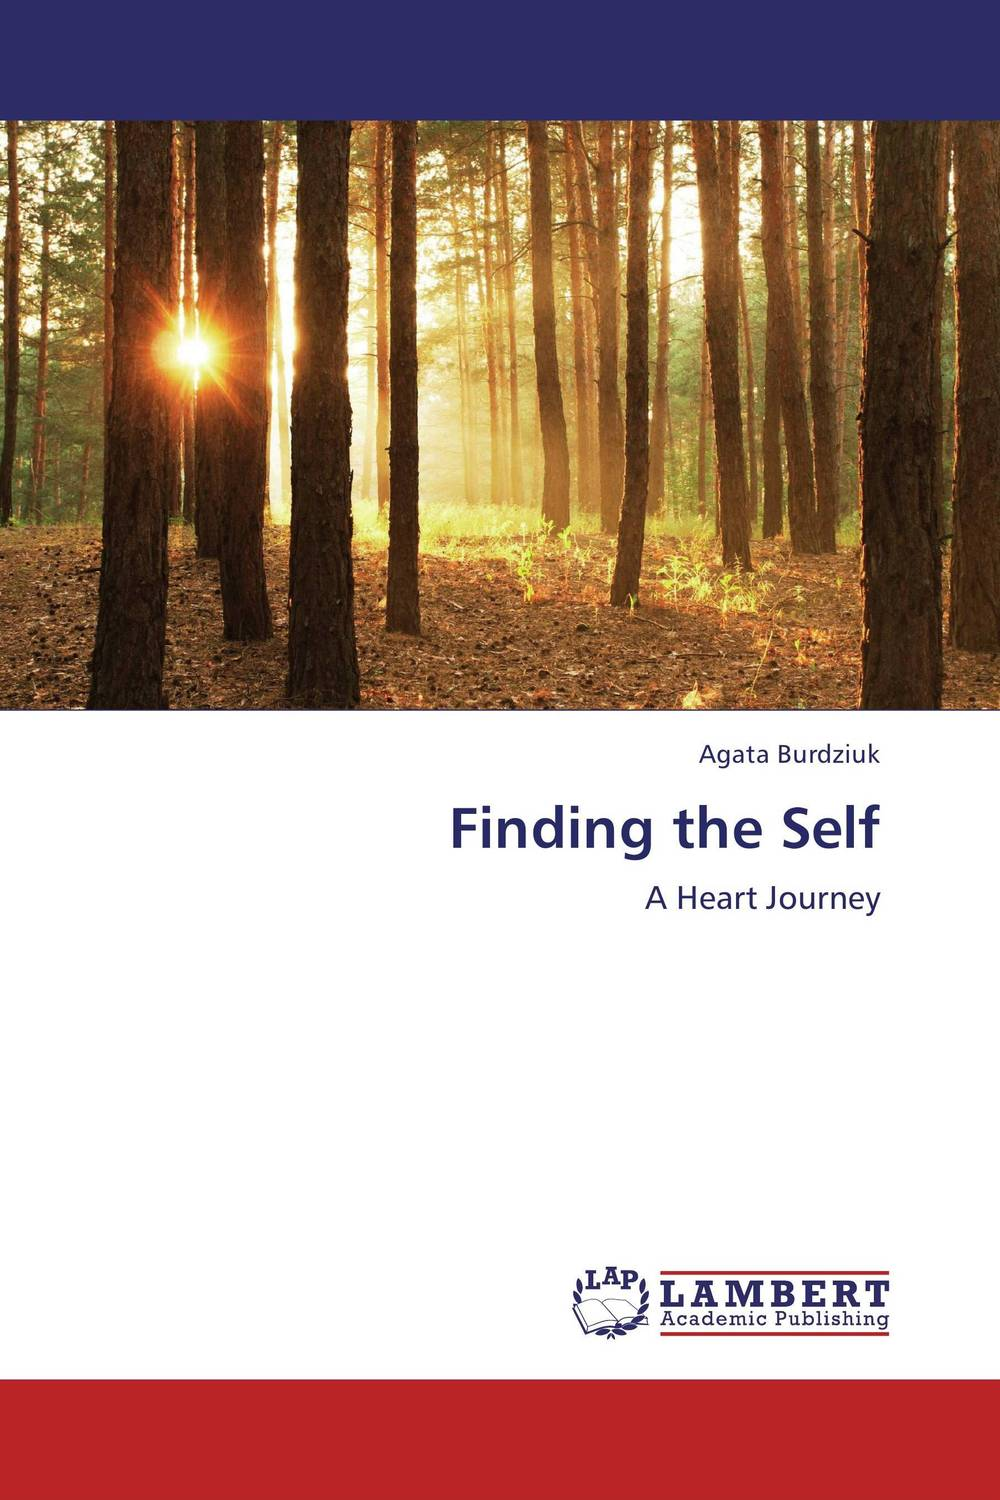 Finding the Self рудольф серкин the london symphony orchestra chamber orchestra of the europe клаудио аббадо rudolf serkin mozart piano concertos 7 cd